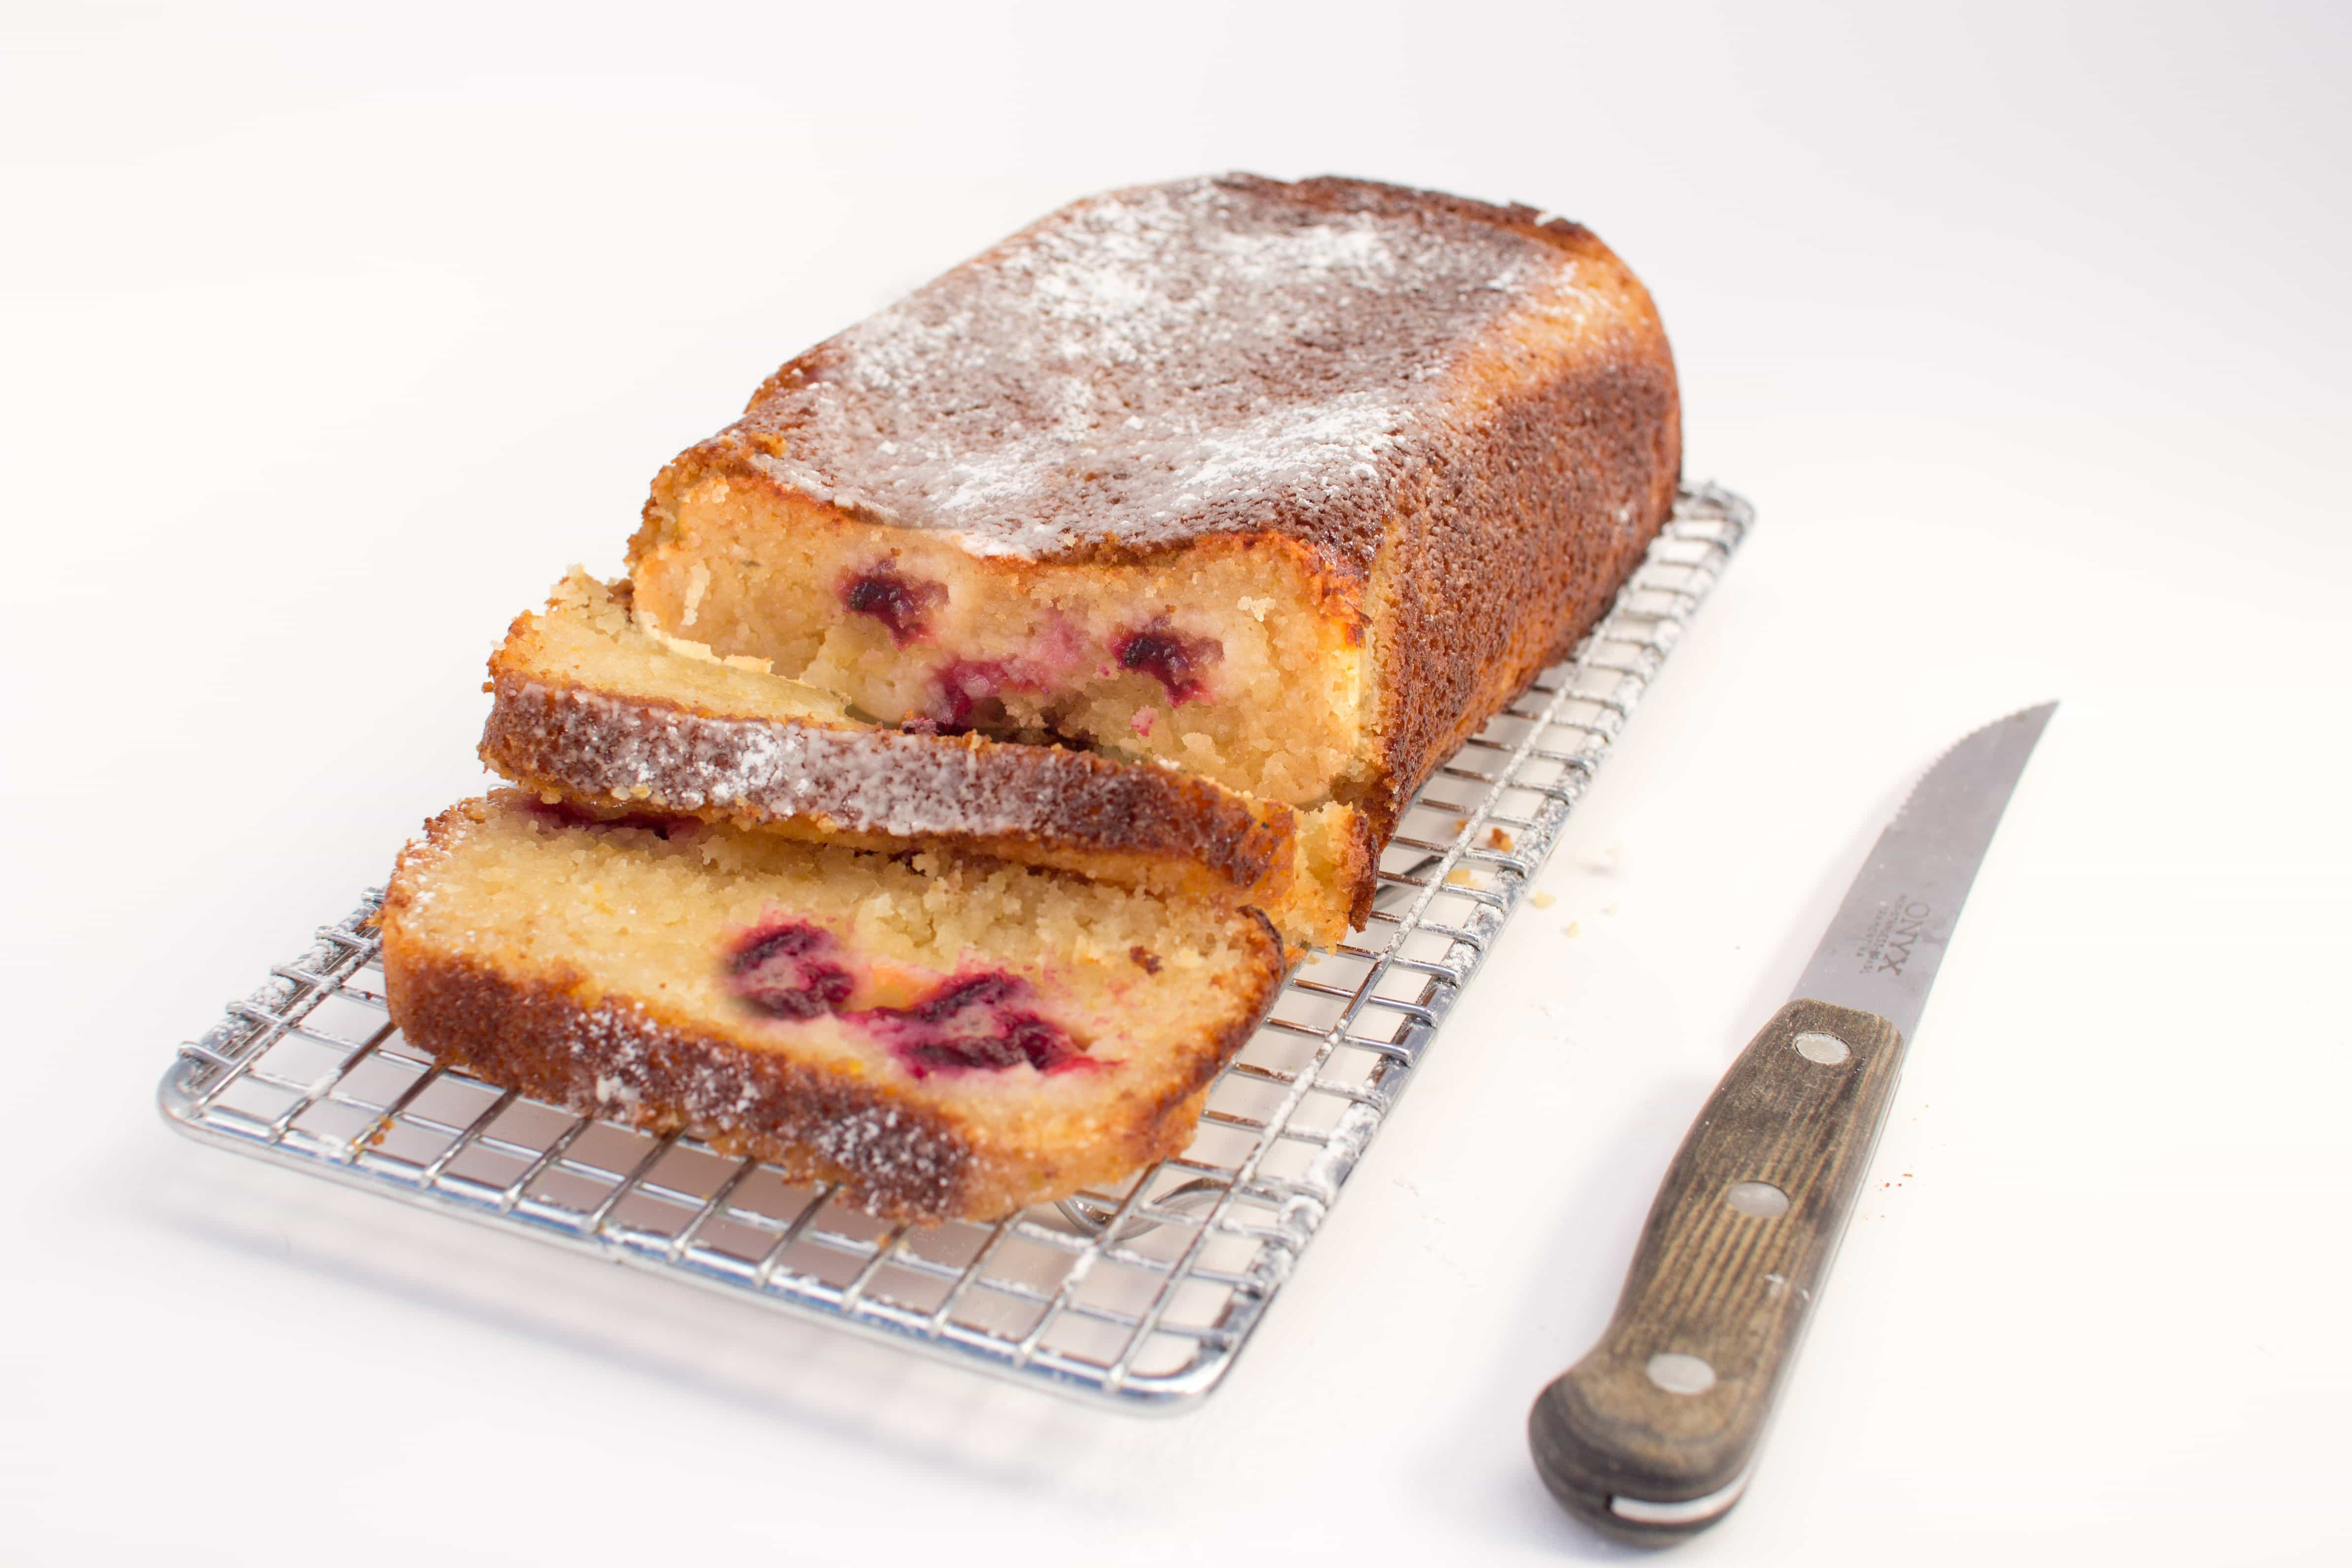 Plum and lemon loaf